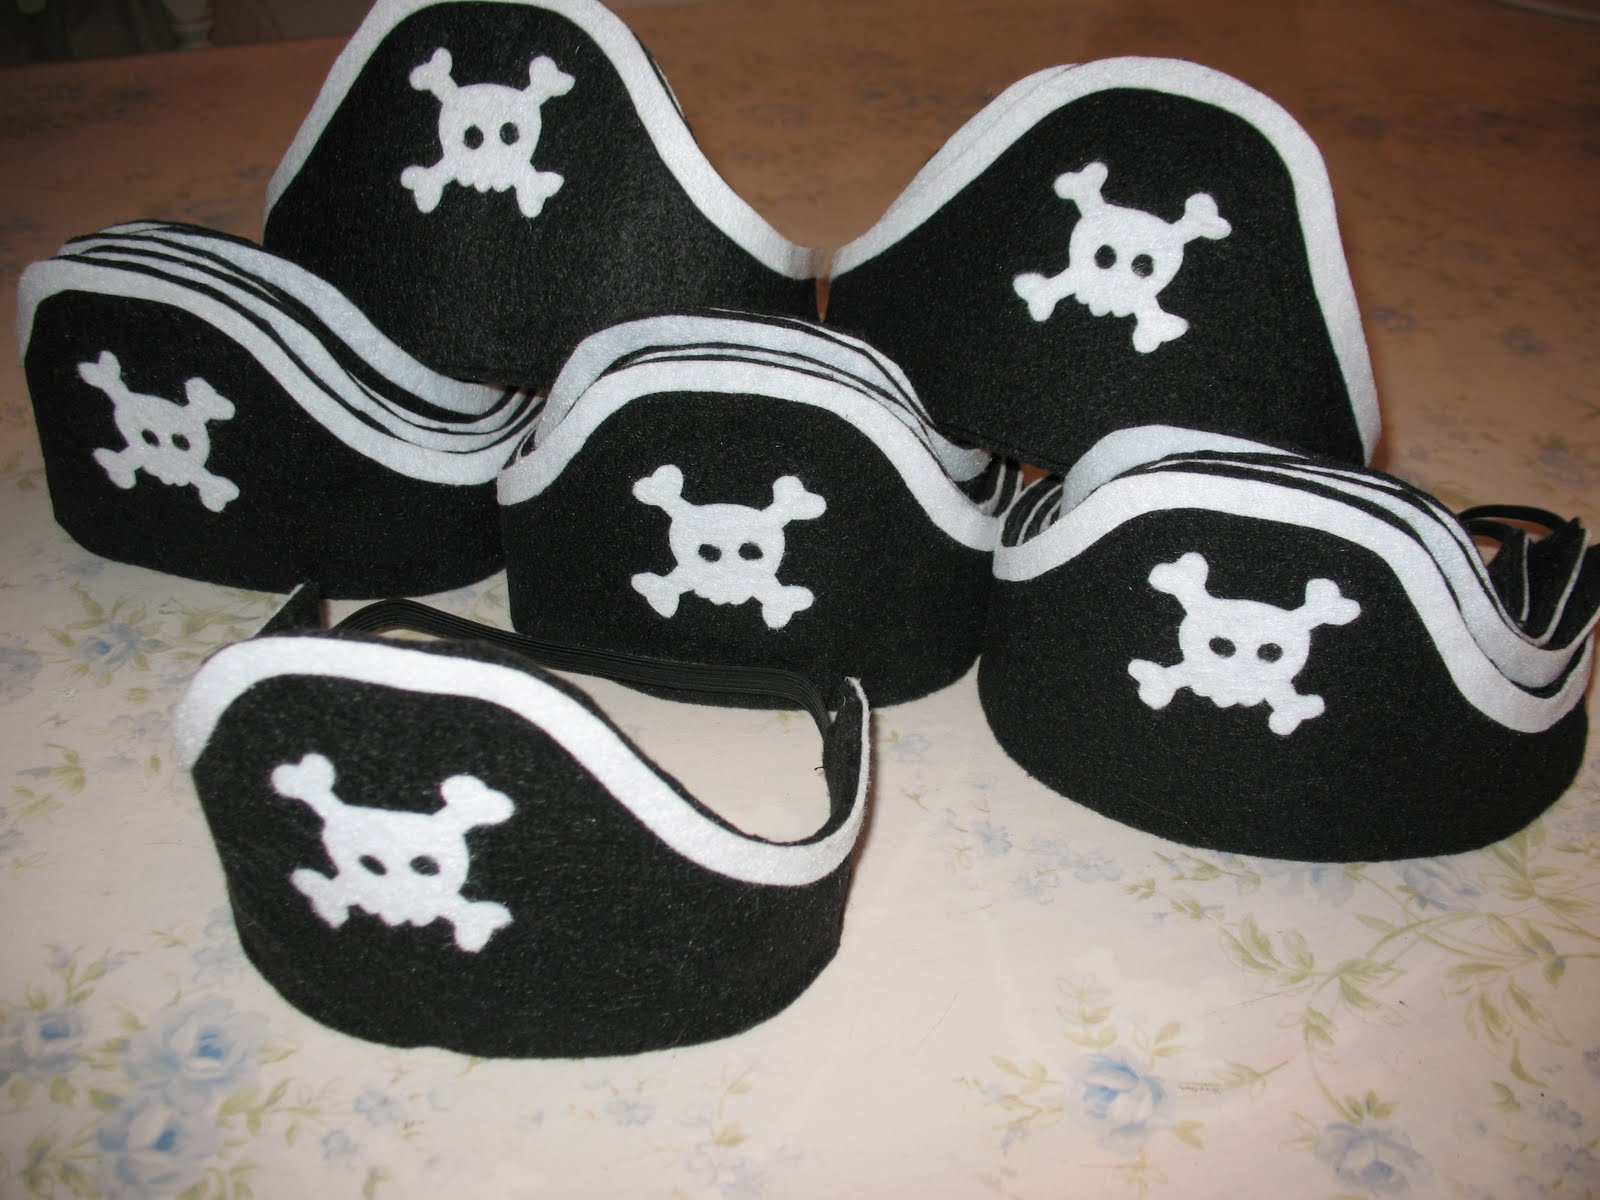 Artsy Fartsy: Felt Pirate Hats